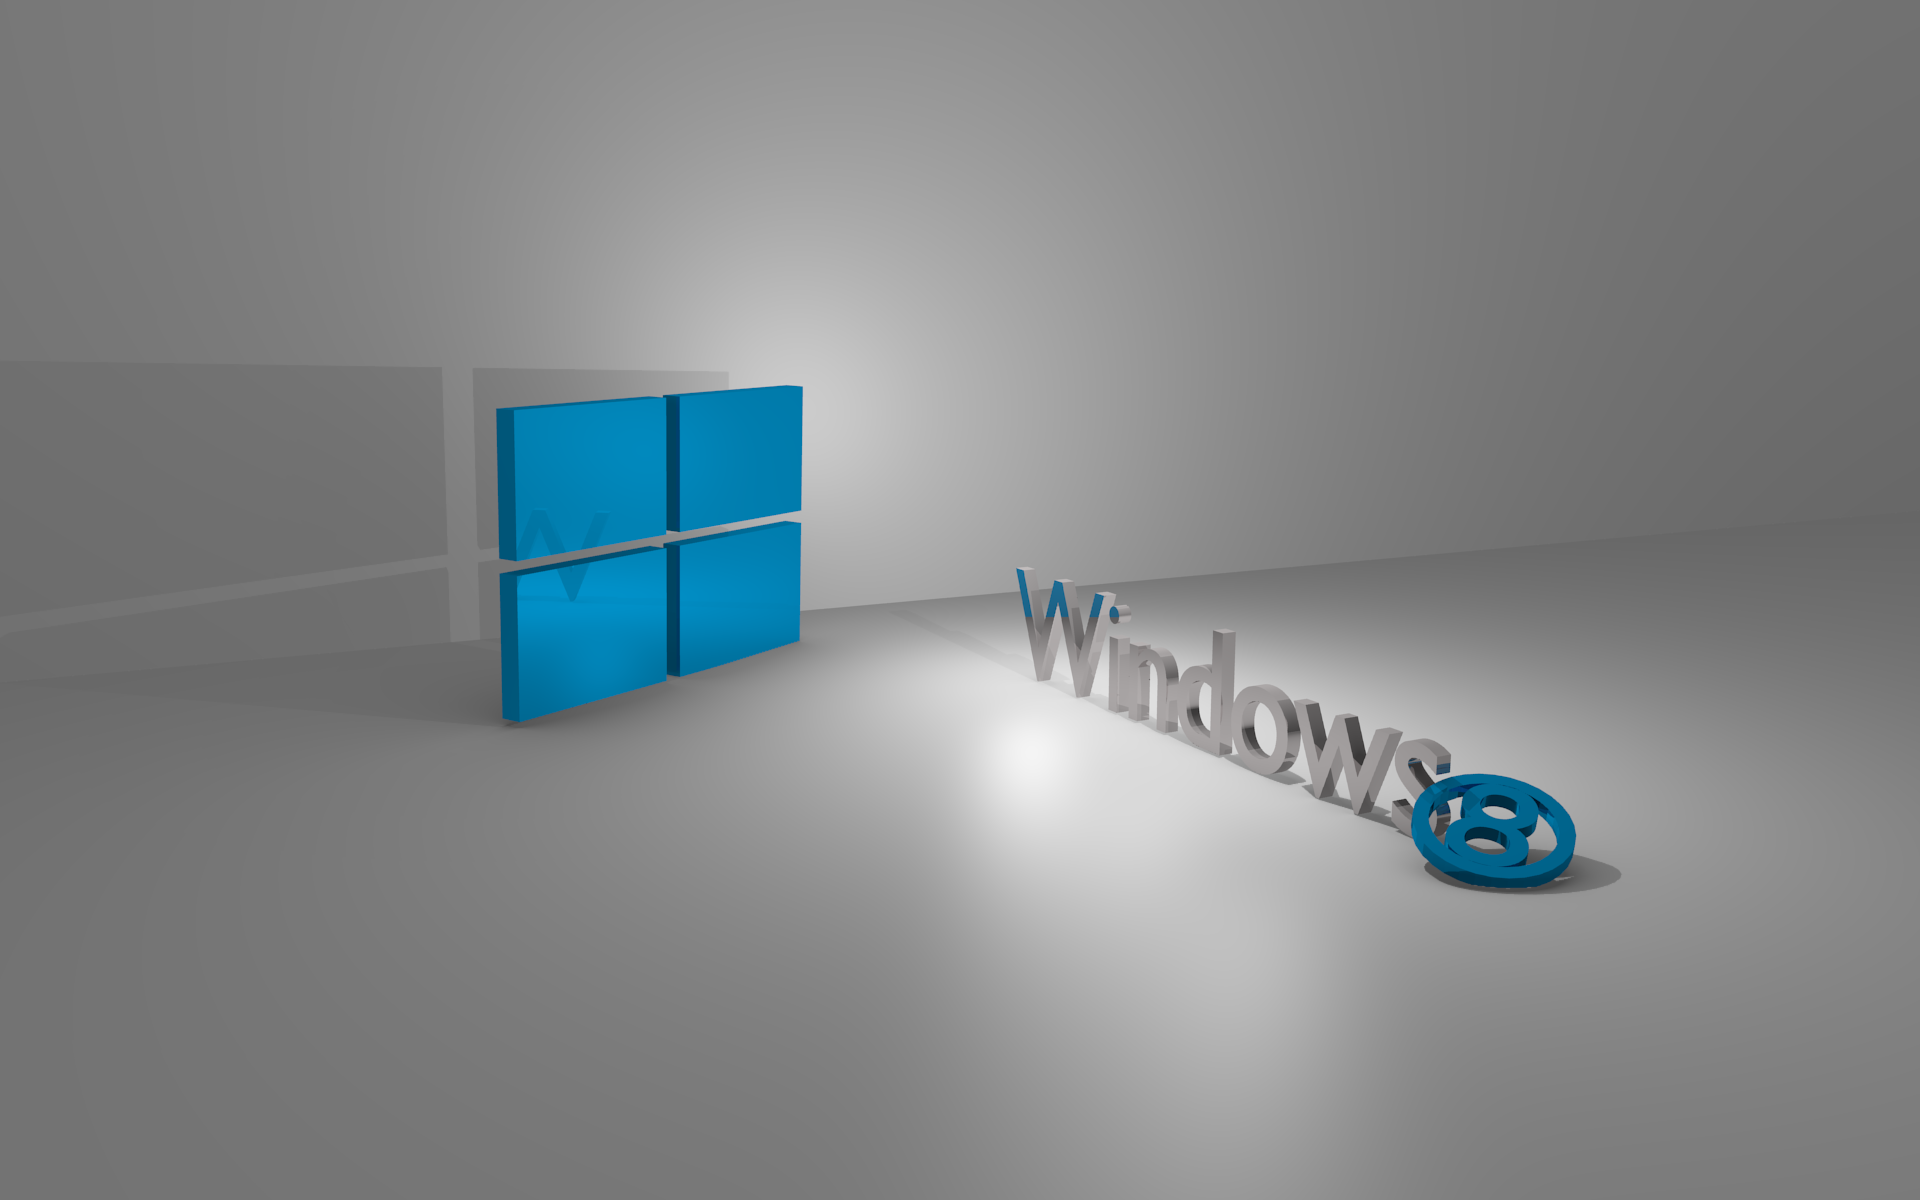 Windows 8 3D Wallpaper Linux Mint Style By Dberm22 On